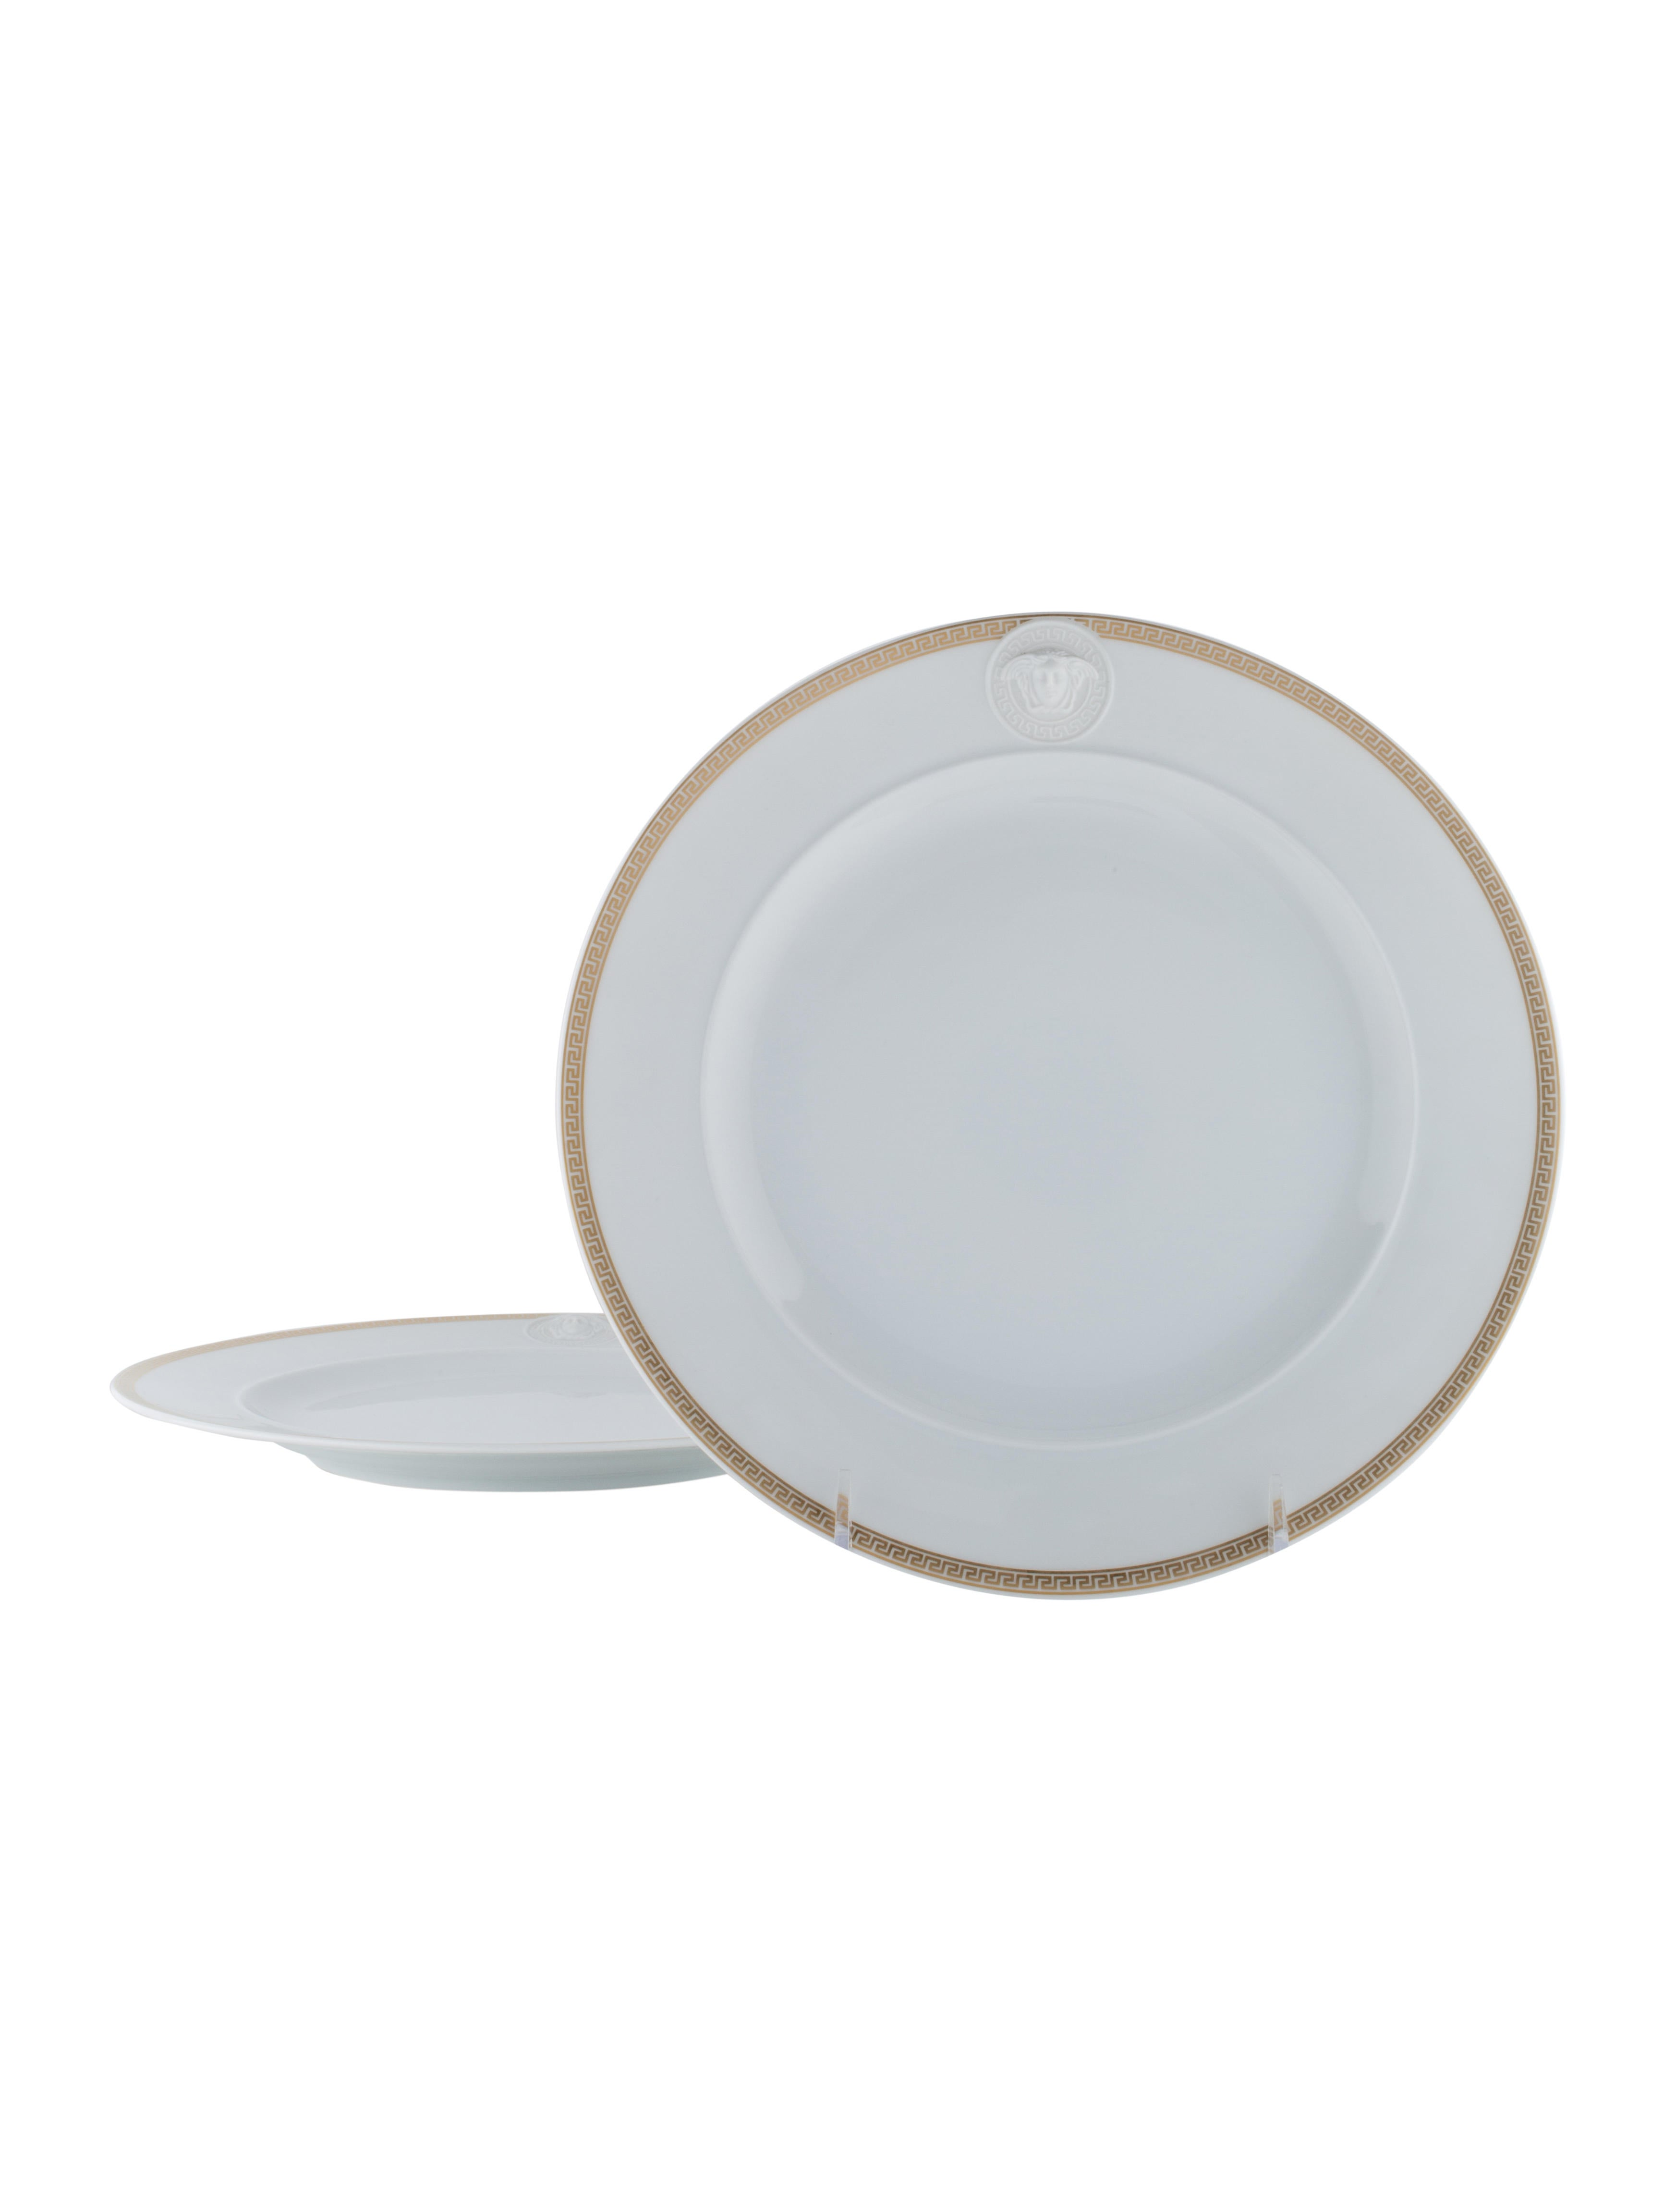 Rosenthal Meets Versace Medallion Meandre d\'On Greca Plates ...